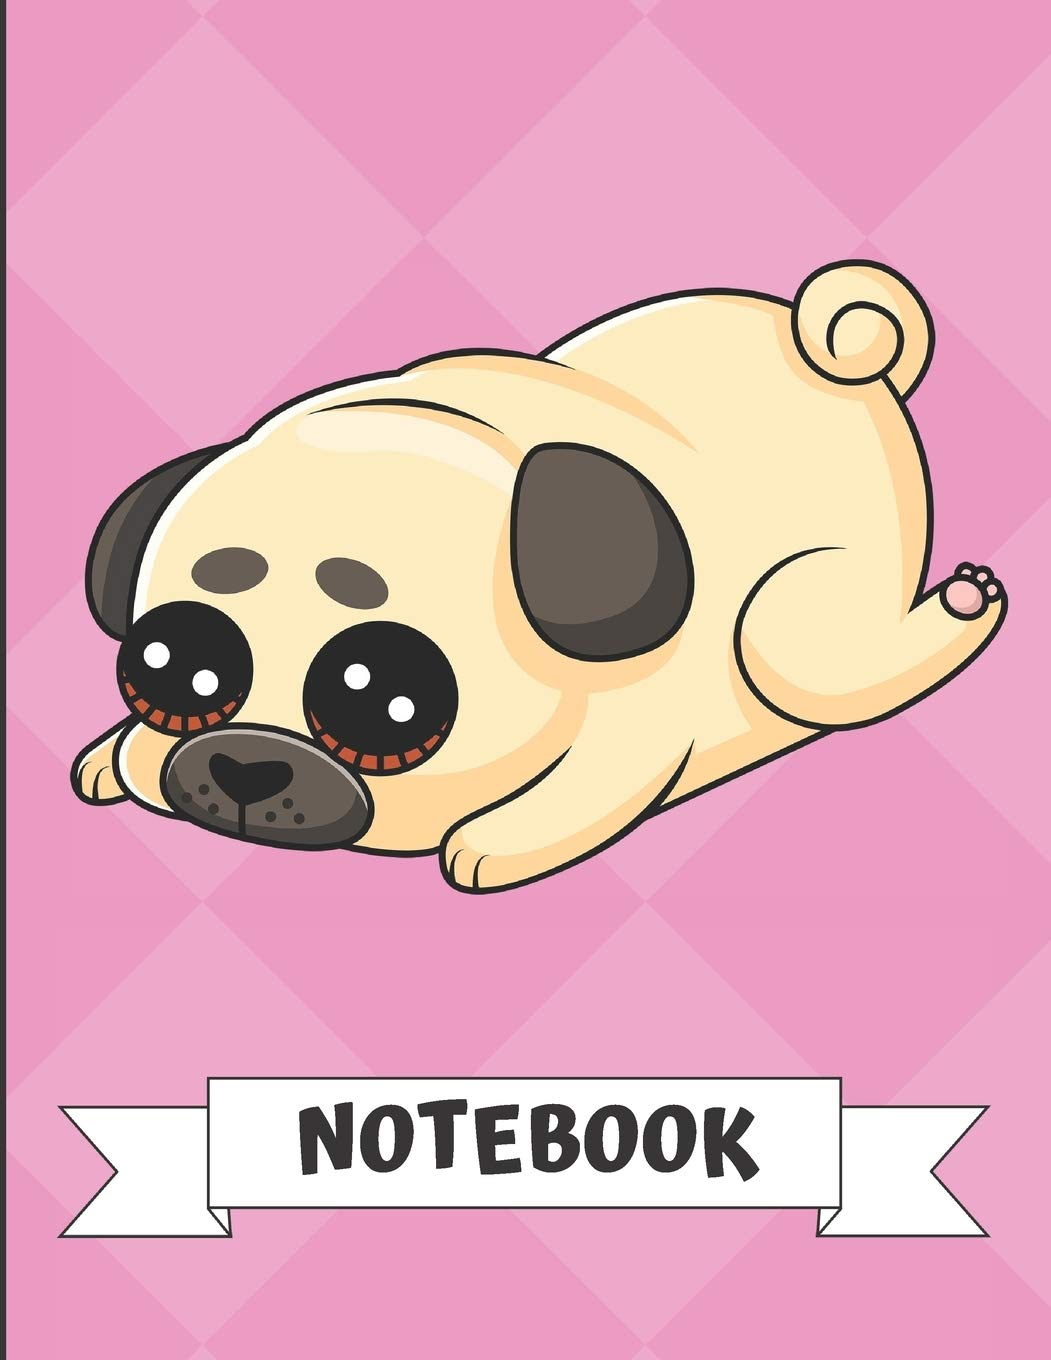 Notebook Cute Sad Little Puppy Dog Cartoon On A Pink Diamond Background Book Is Filled With Lined Journal Paper For Notes And Creating Writing Publishing Jessica H Mavenport 9781701618336 Amazon Com Books